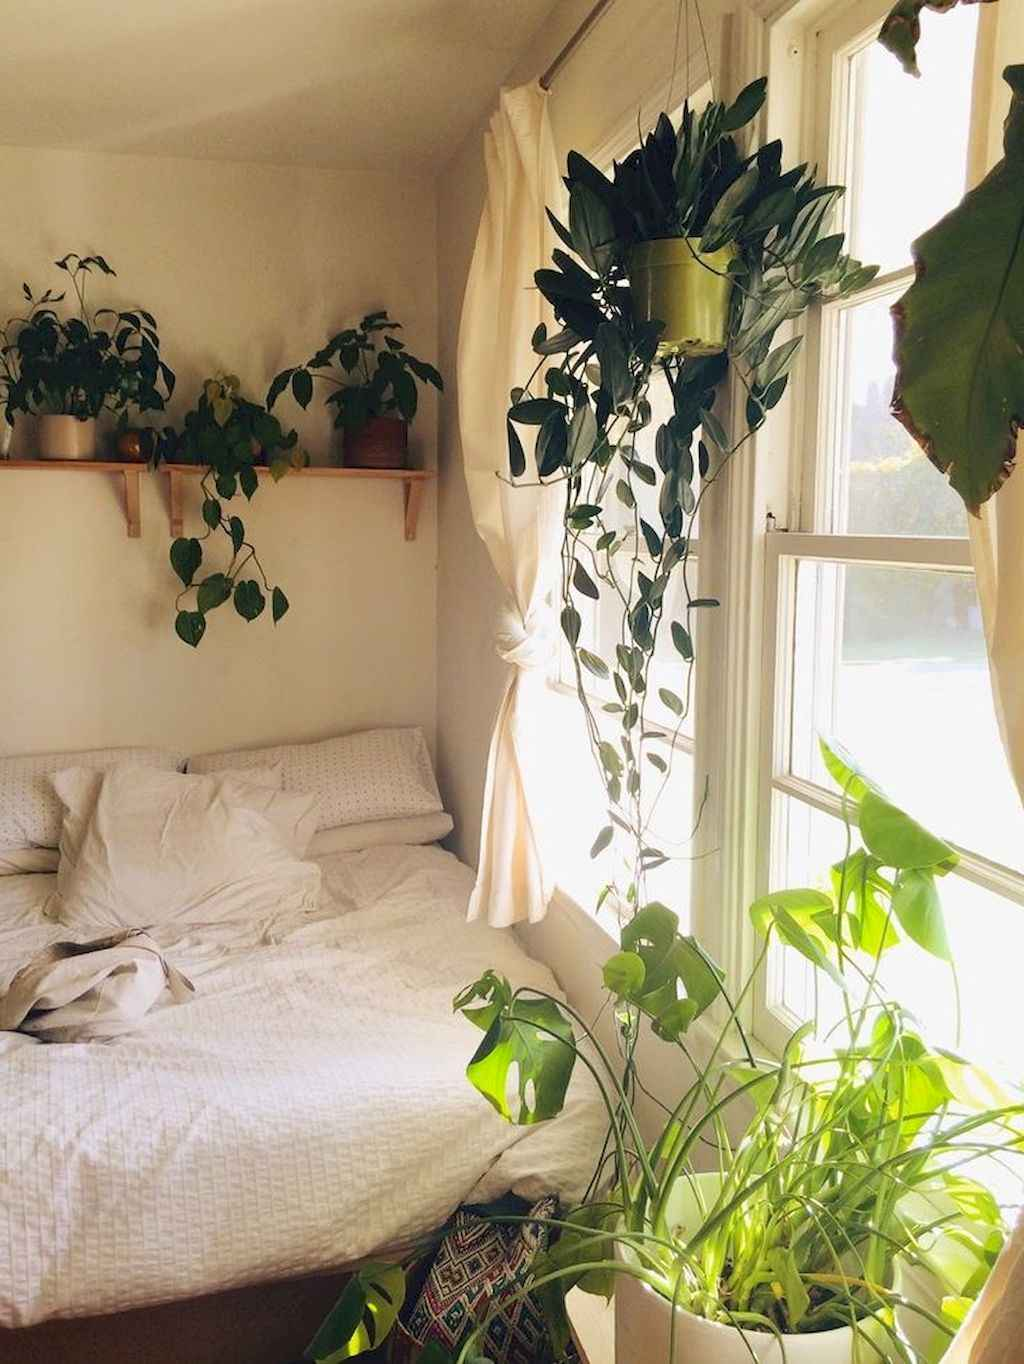 Couples first apartment decorating ideas (18)